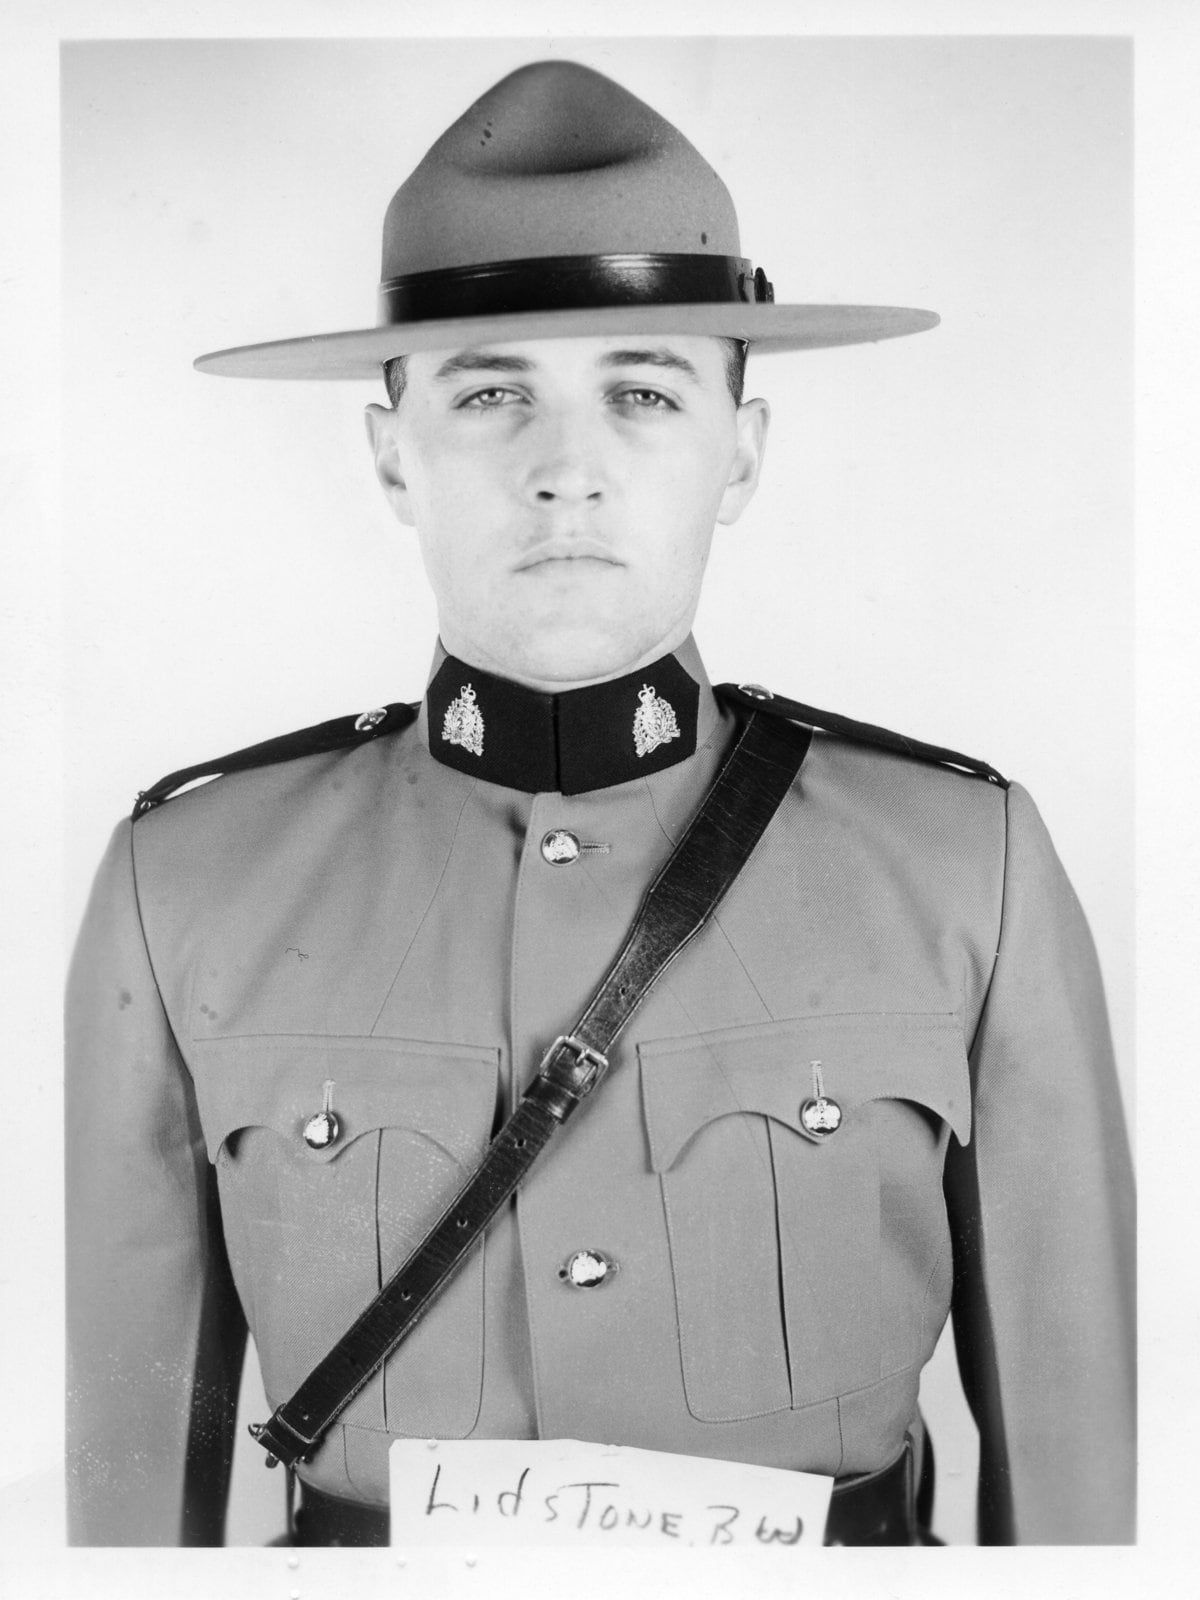 81f8fbad14f9b Legacy of slain Fredericton officers endures in RCMP training 40 years  later